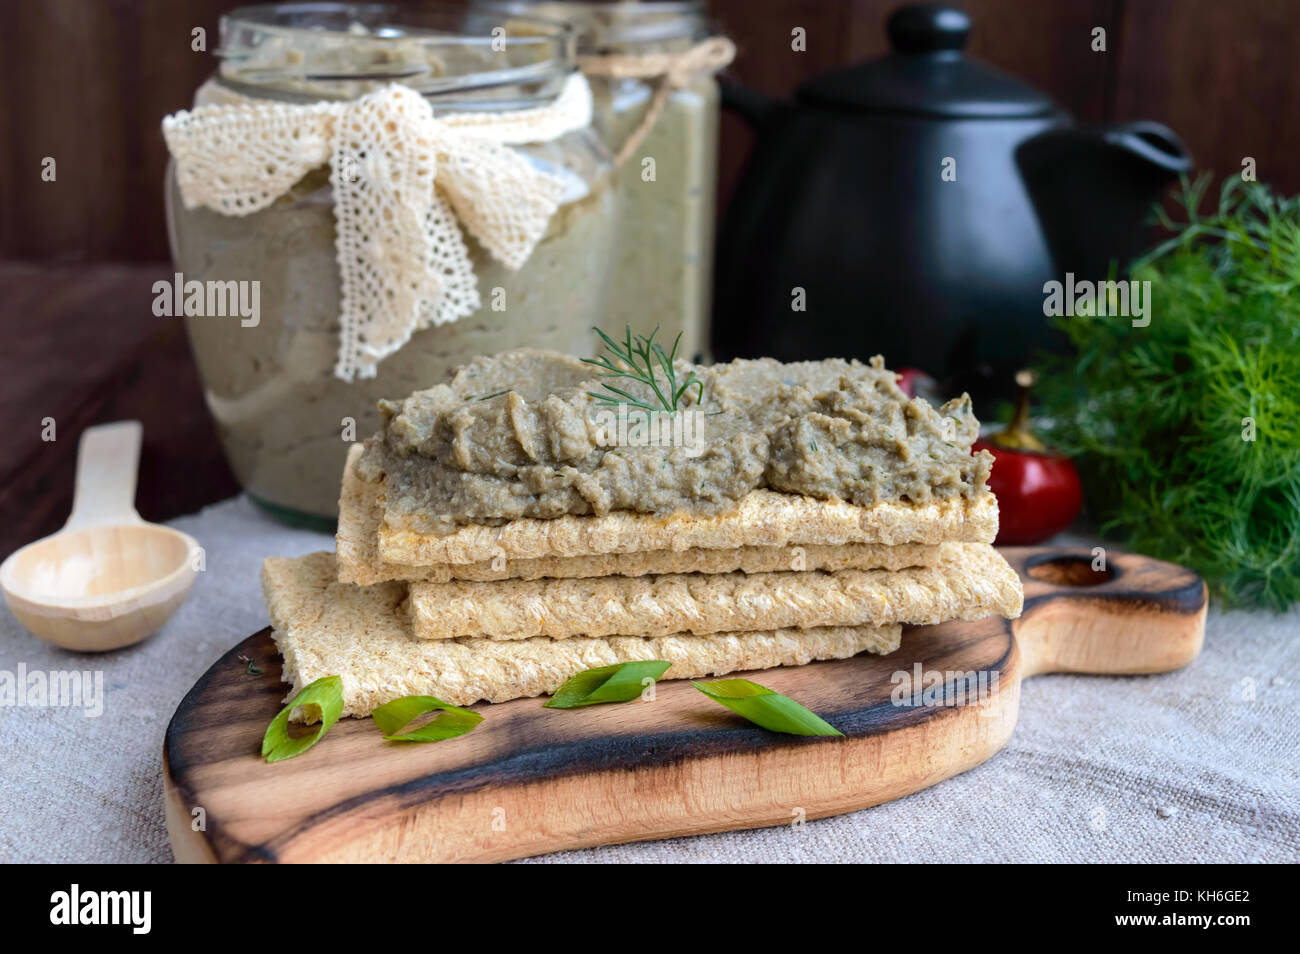 Gentle paste, paste from the eggplant. Dietary dish. Put on a crisp low-calorie diet fitness bread. Vegan cuisine. - Stock Image